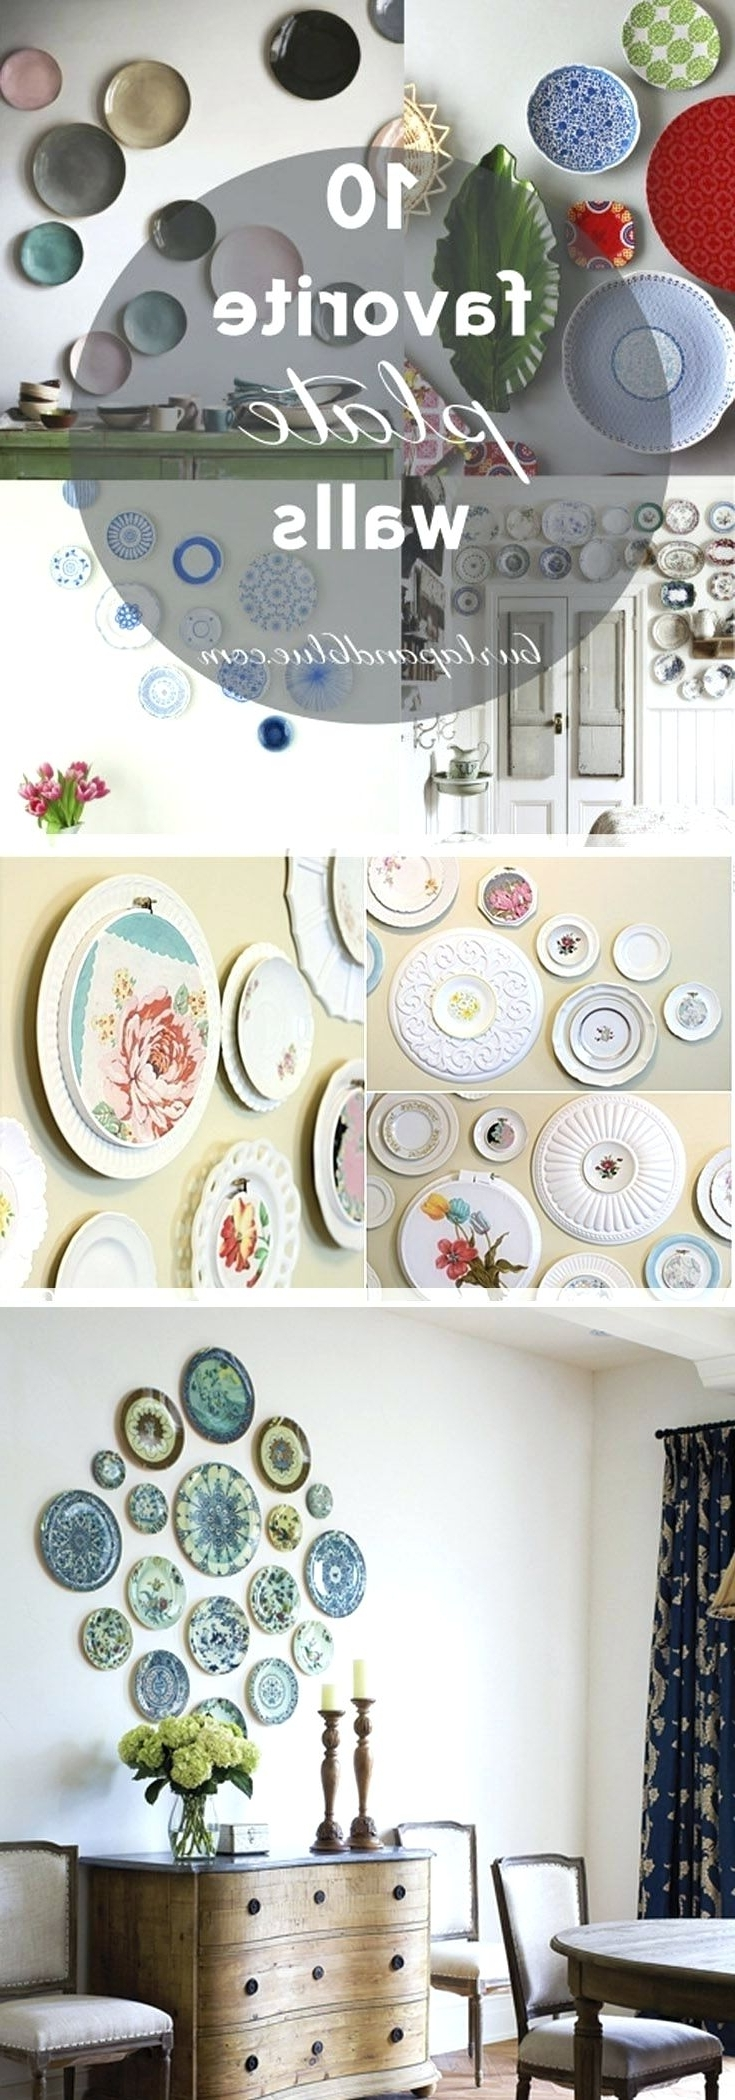 Favorite Wall Arts ~ Wall Plates Art Deco Wall Inspirations 108 High Impact Inside Scattered Italian Plates Wall Art (View 9 of 15)